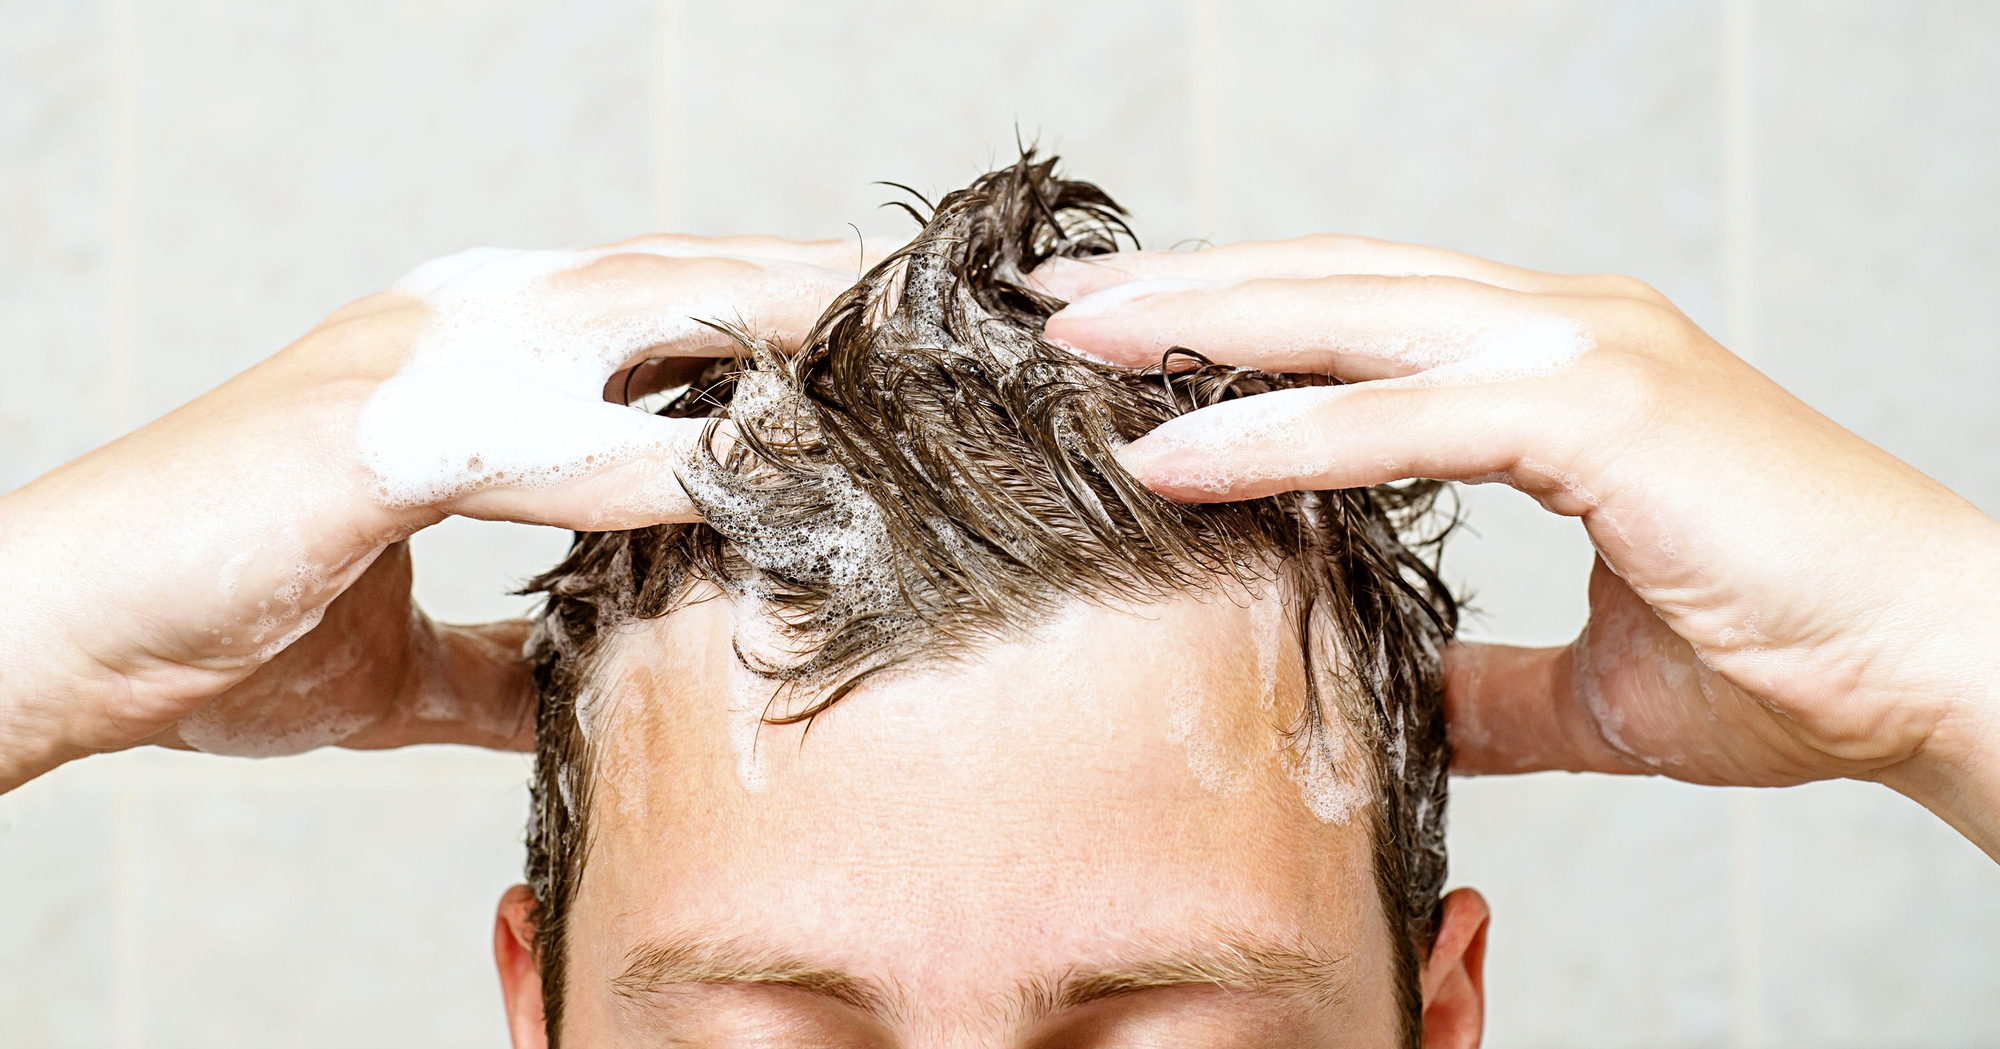 What's The Best Men's Shampoo For You?